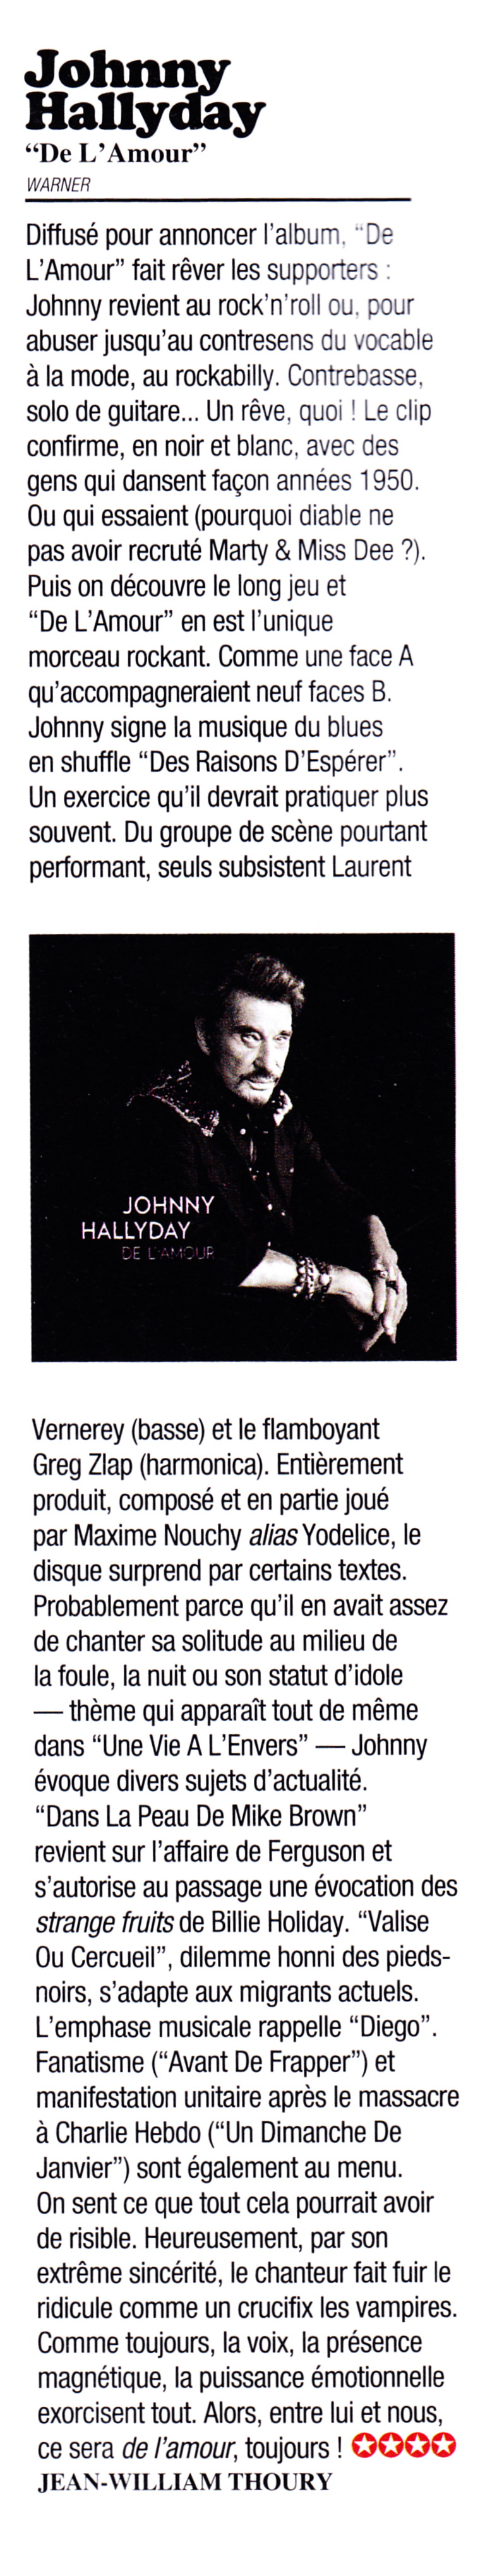 "Chronique par JEAN WILLIAM THOURY de l'album ""DE L'AMOUR"" de JOHNNY HALLYDAY (dans ""Rock Et Folk"") 15111907390117899513763865"